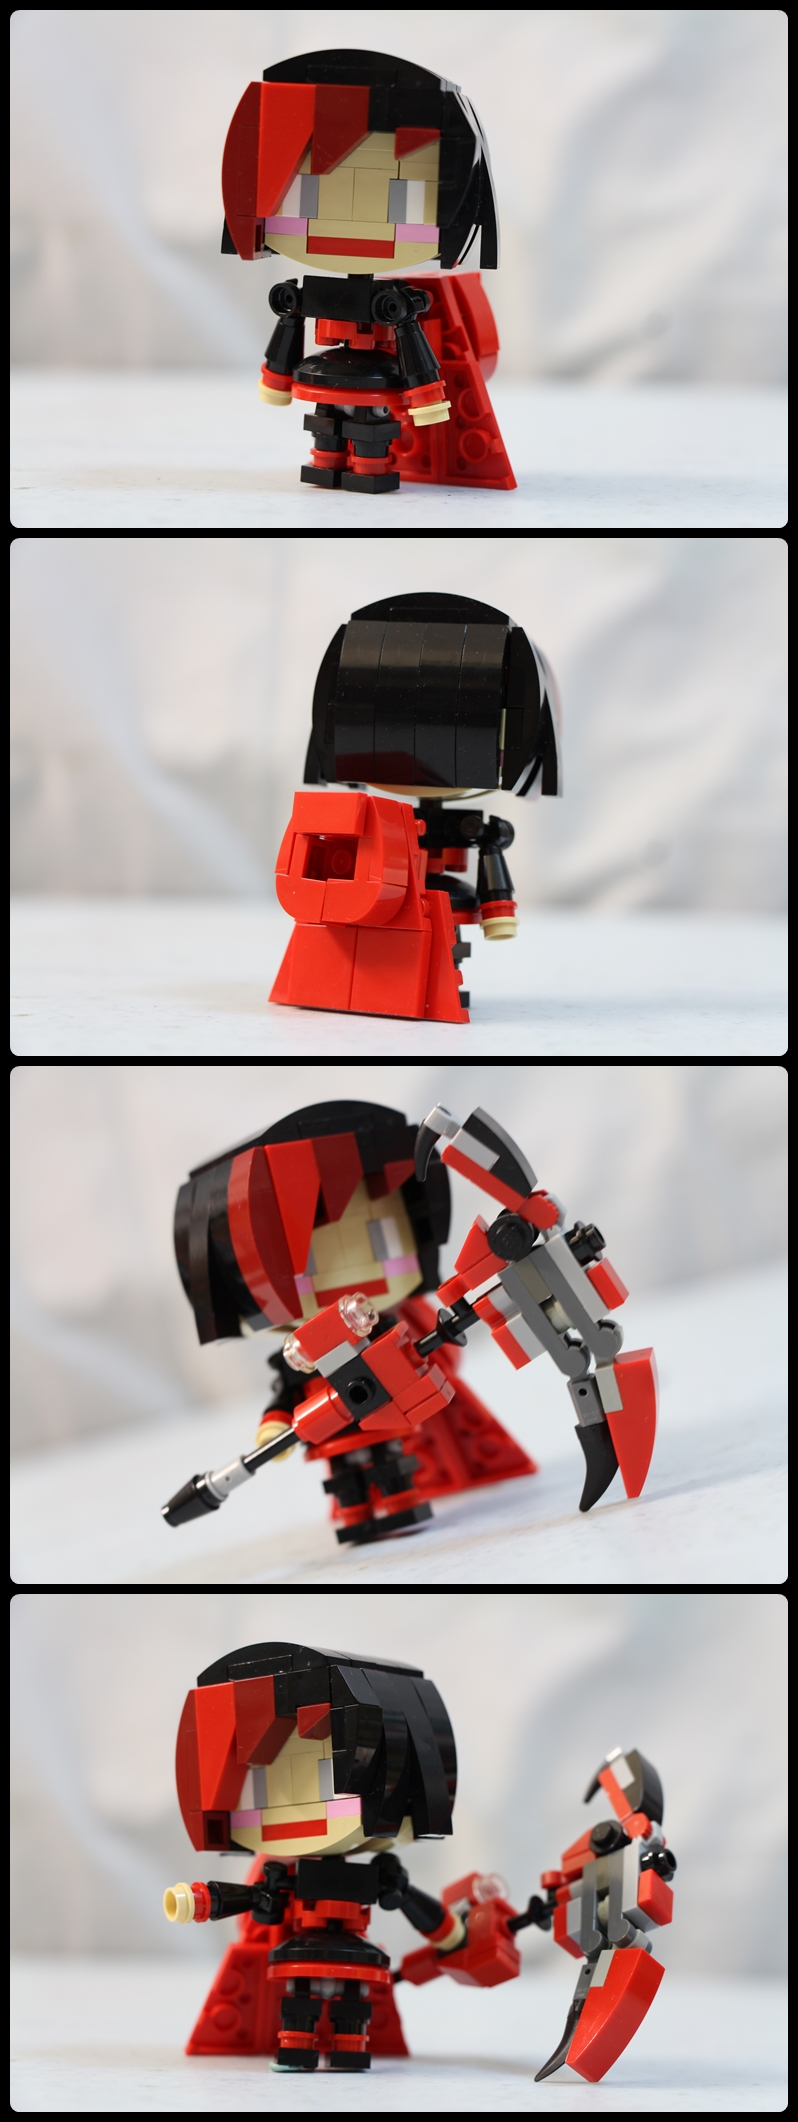 lego rwby chibi ruby rose by ejaylee on deviantart. Black Bedroom Furniture Sets. Home Design Ideas